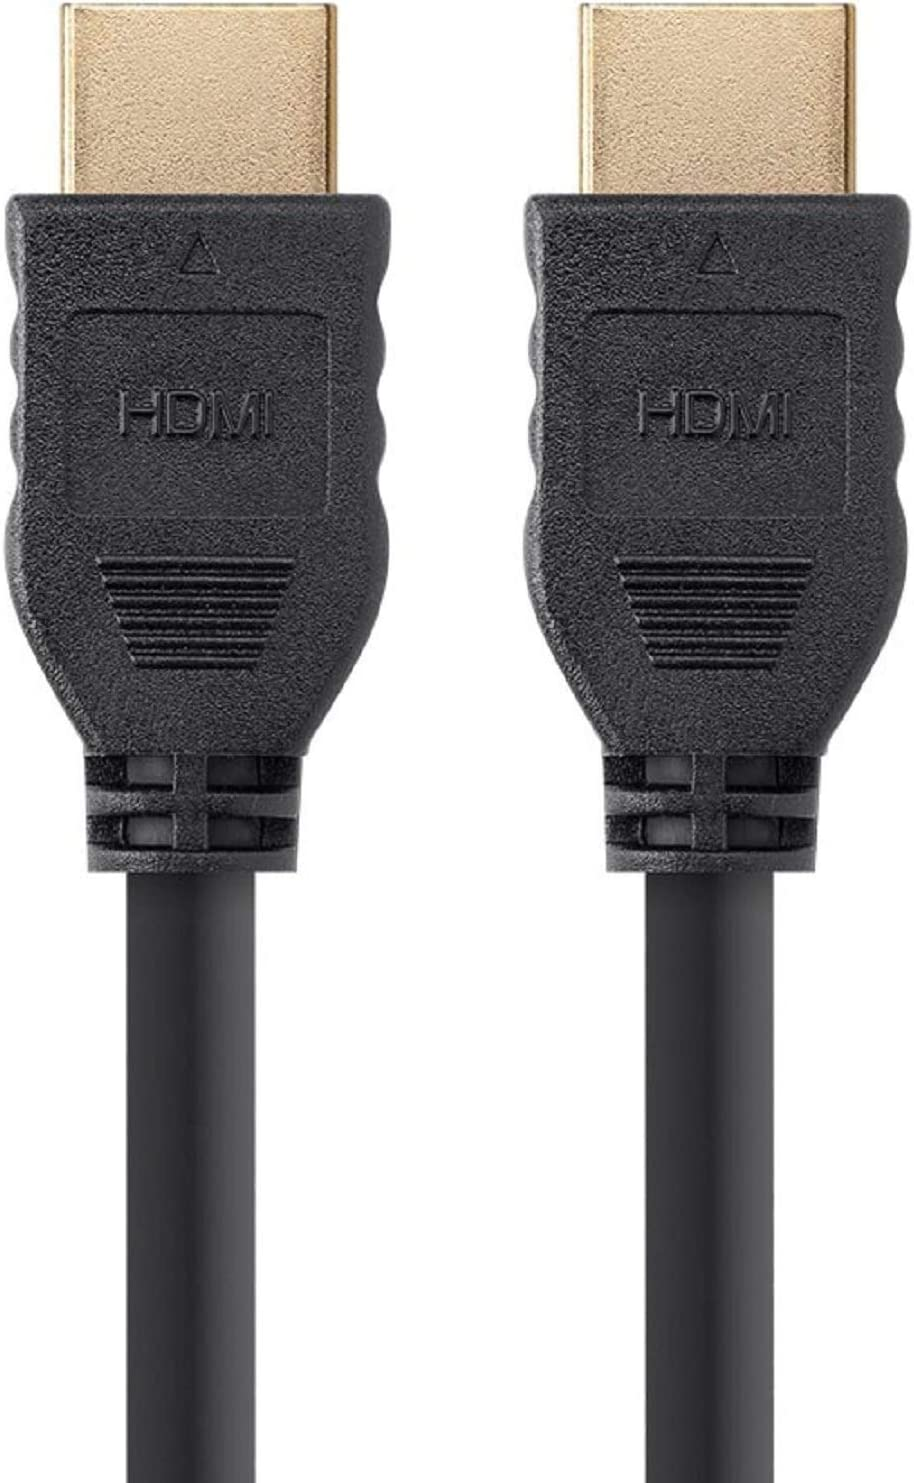 amazon com monoprice 113781 high speed hdmi cable 10 feet black no logo 4k 60hz hdr 18gbps yuv 4 4 4 30awg cl2 commercial series home audio theater monoprice 113781 high speed hdmi cable 10 feet black no logo 4k 60hz hdr 18gbps yuv 4 4 4 30awg cl2 commercial series